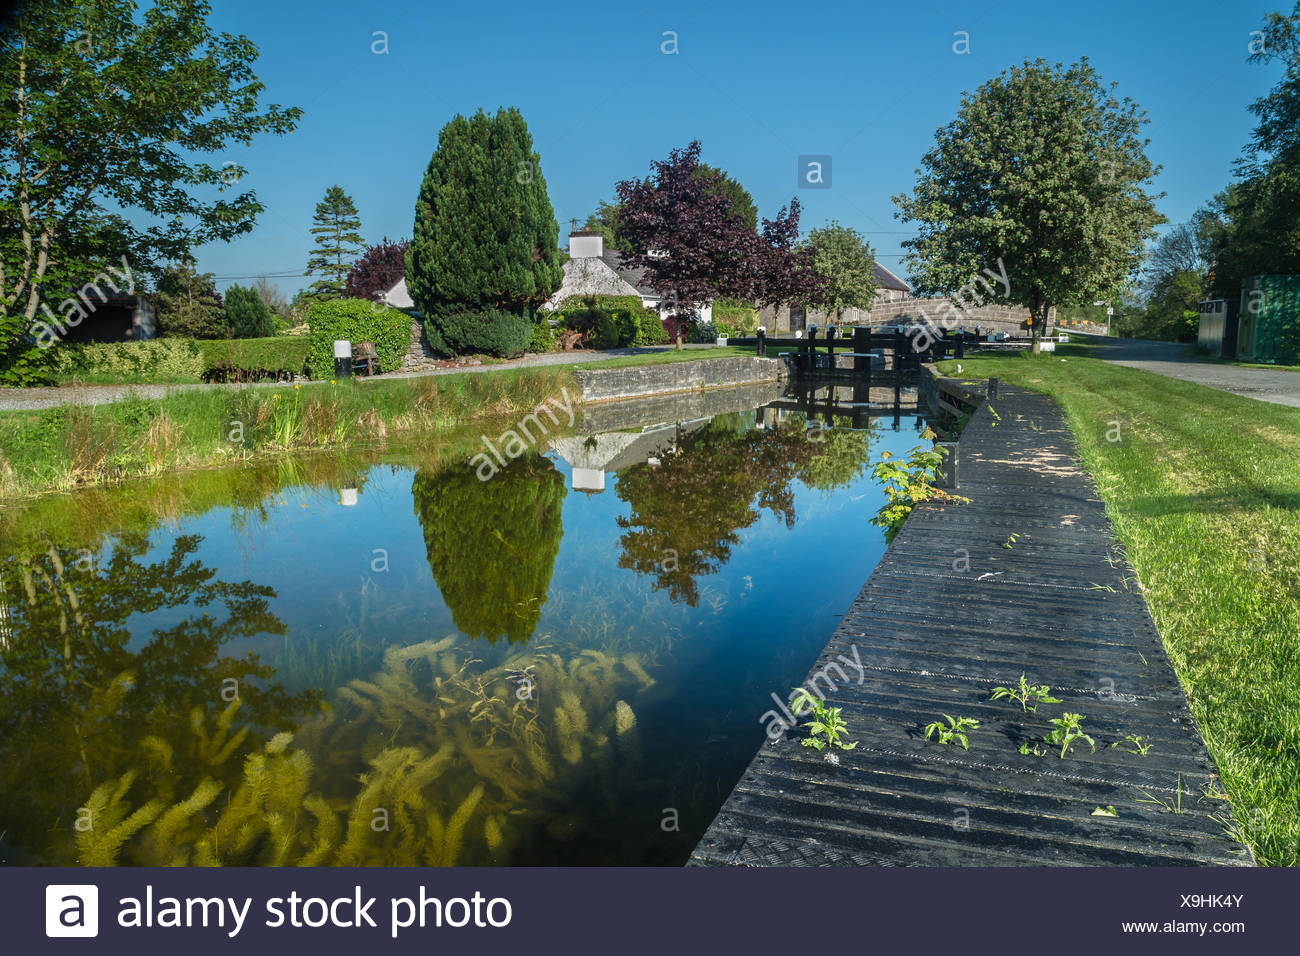 Ireland, County Offaly, Belmont, Belmont Lock, View of canal in summer morning - Stock Image